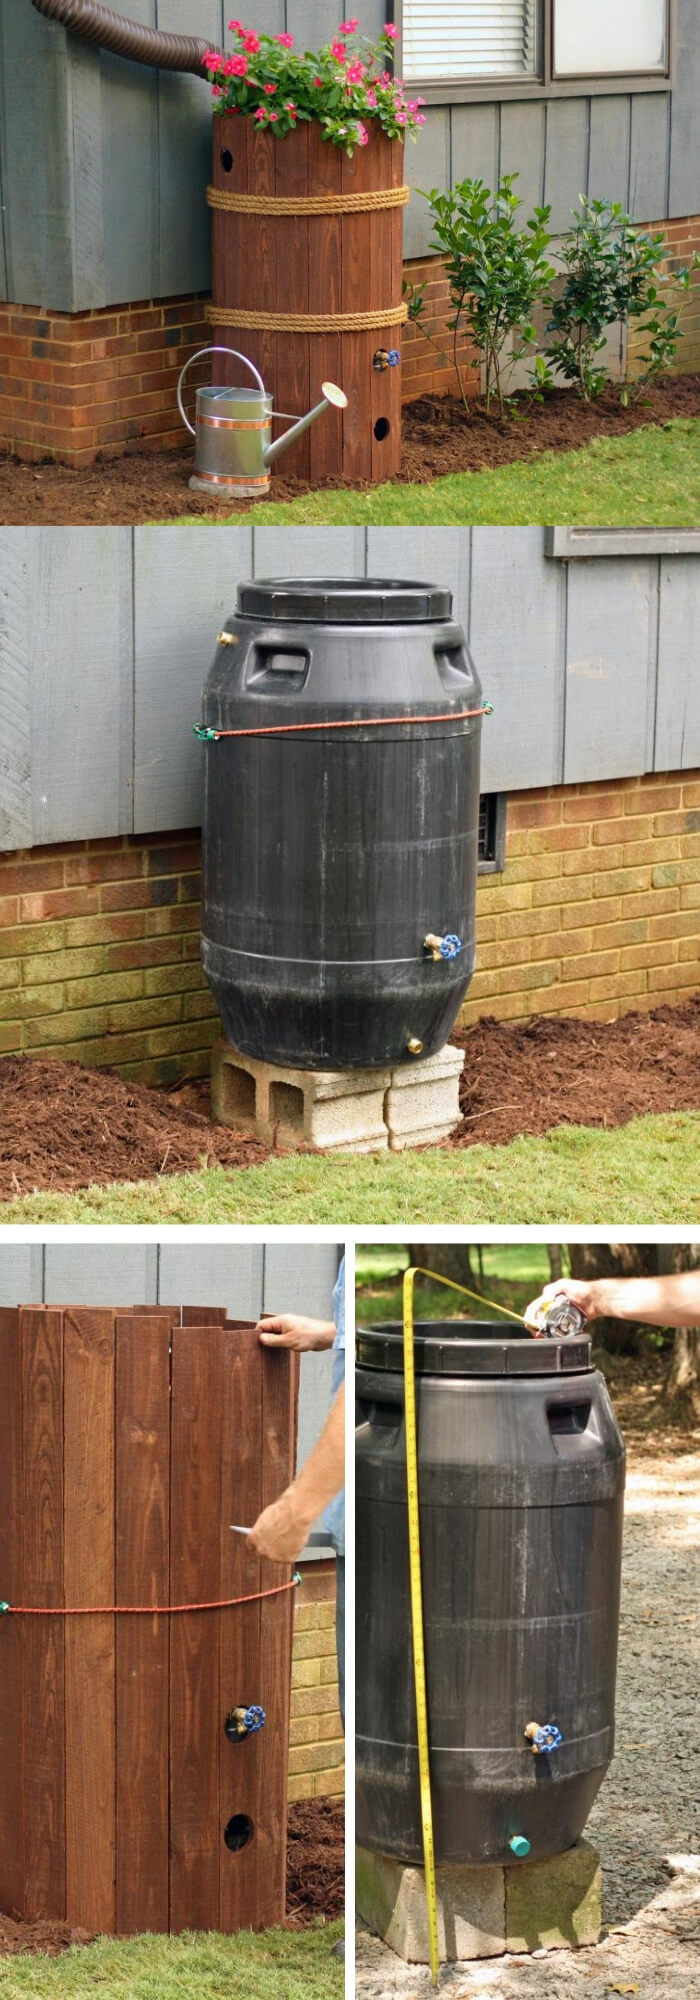 Make a rain barrel | Best Downspout landscaping ideas